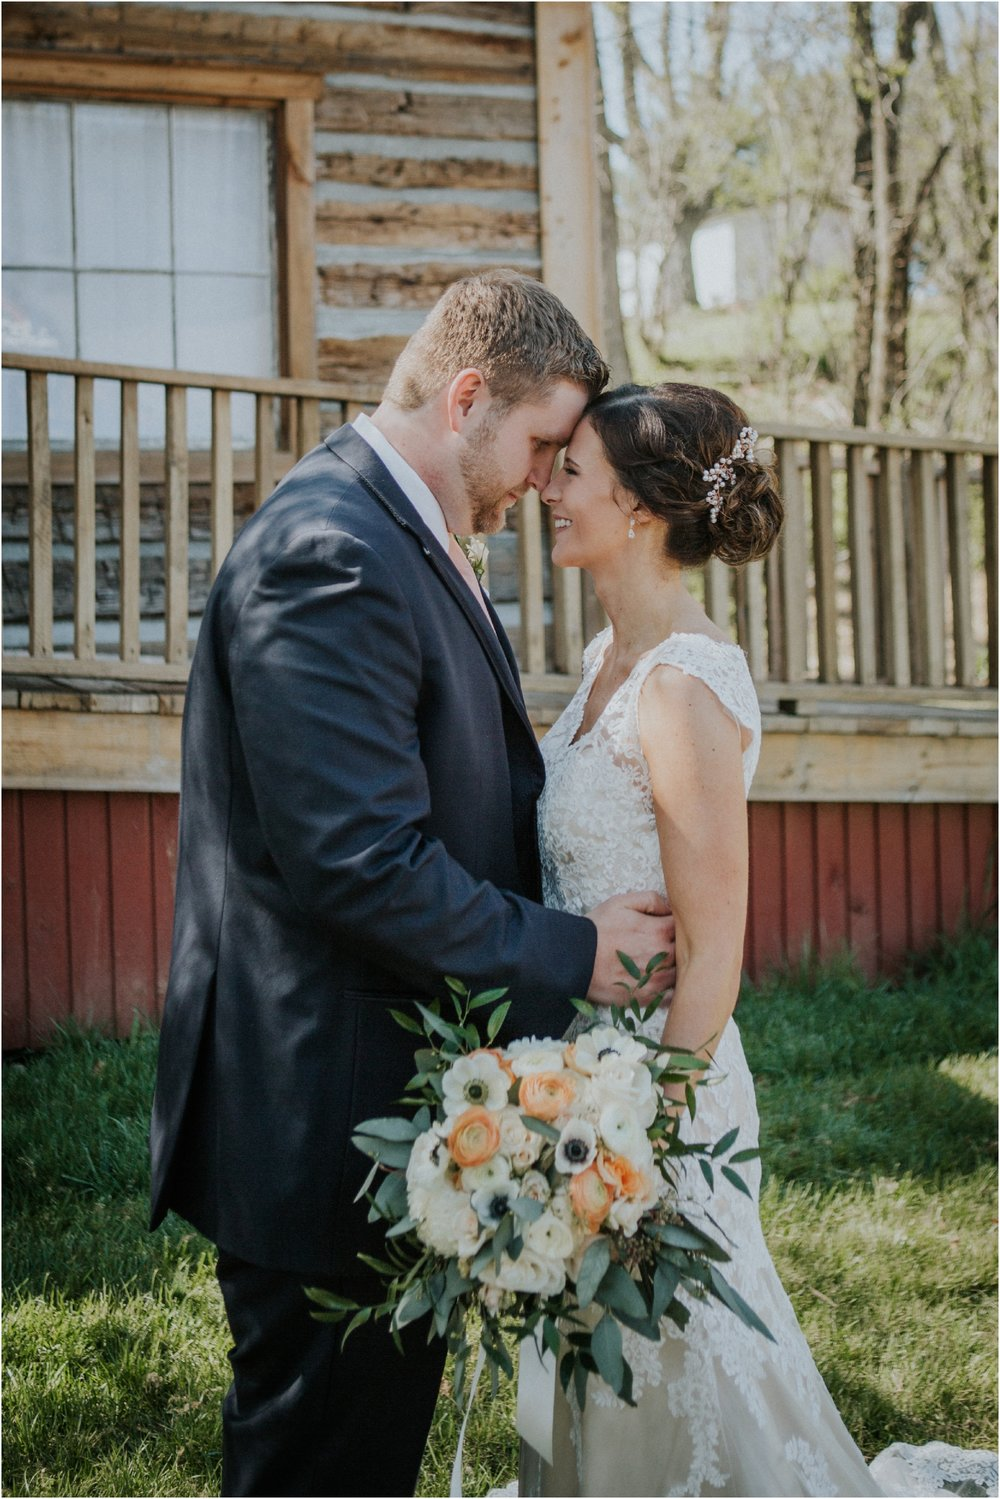 millstone-limestone-tn-tennessee-rustic-outdoors-pastel-lodge-cabin-venue-wedding-katy-sergent-photographer_0055.jpg